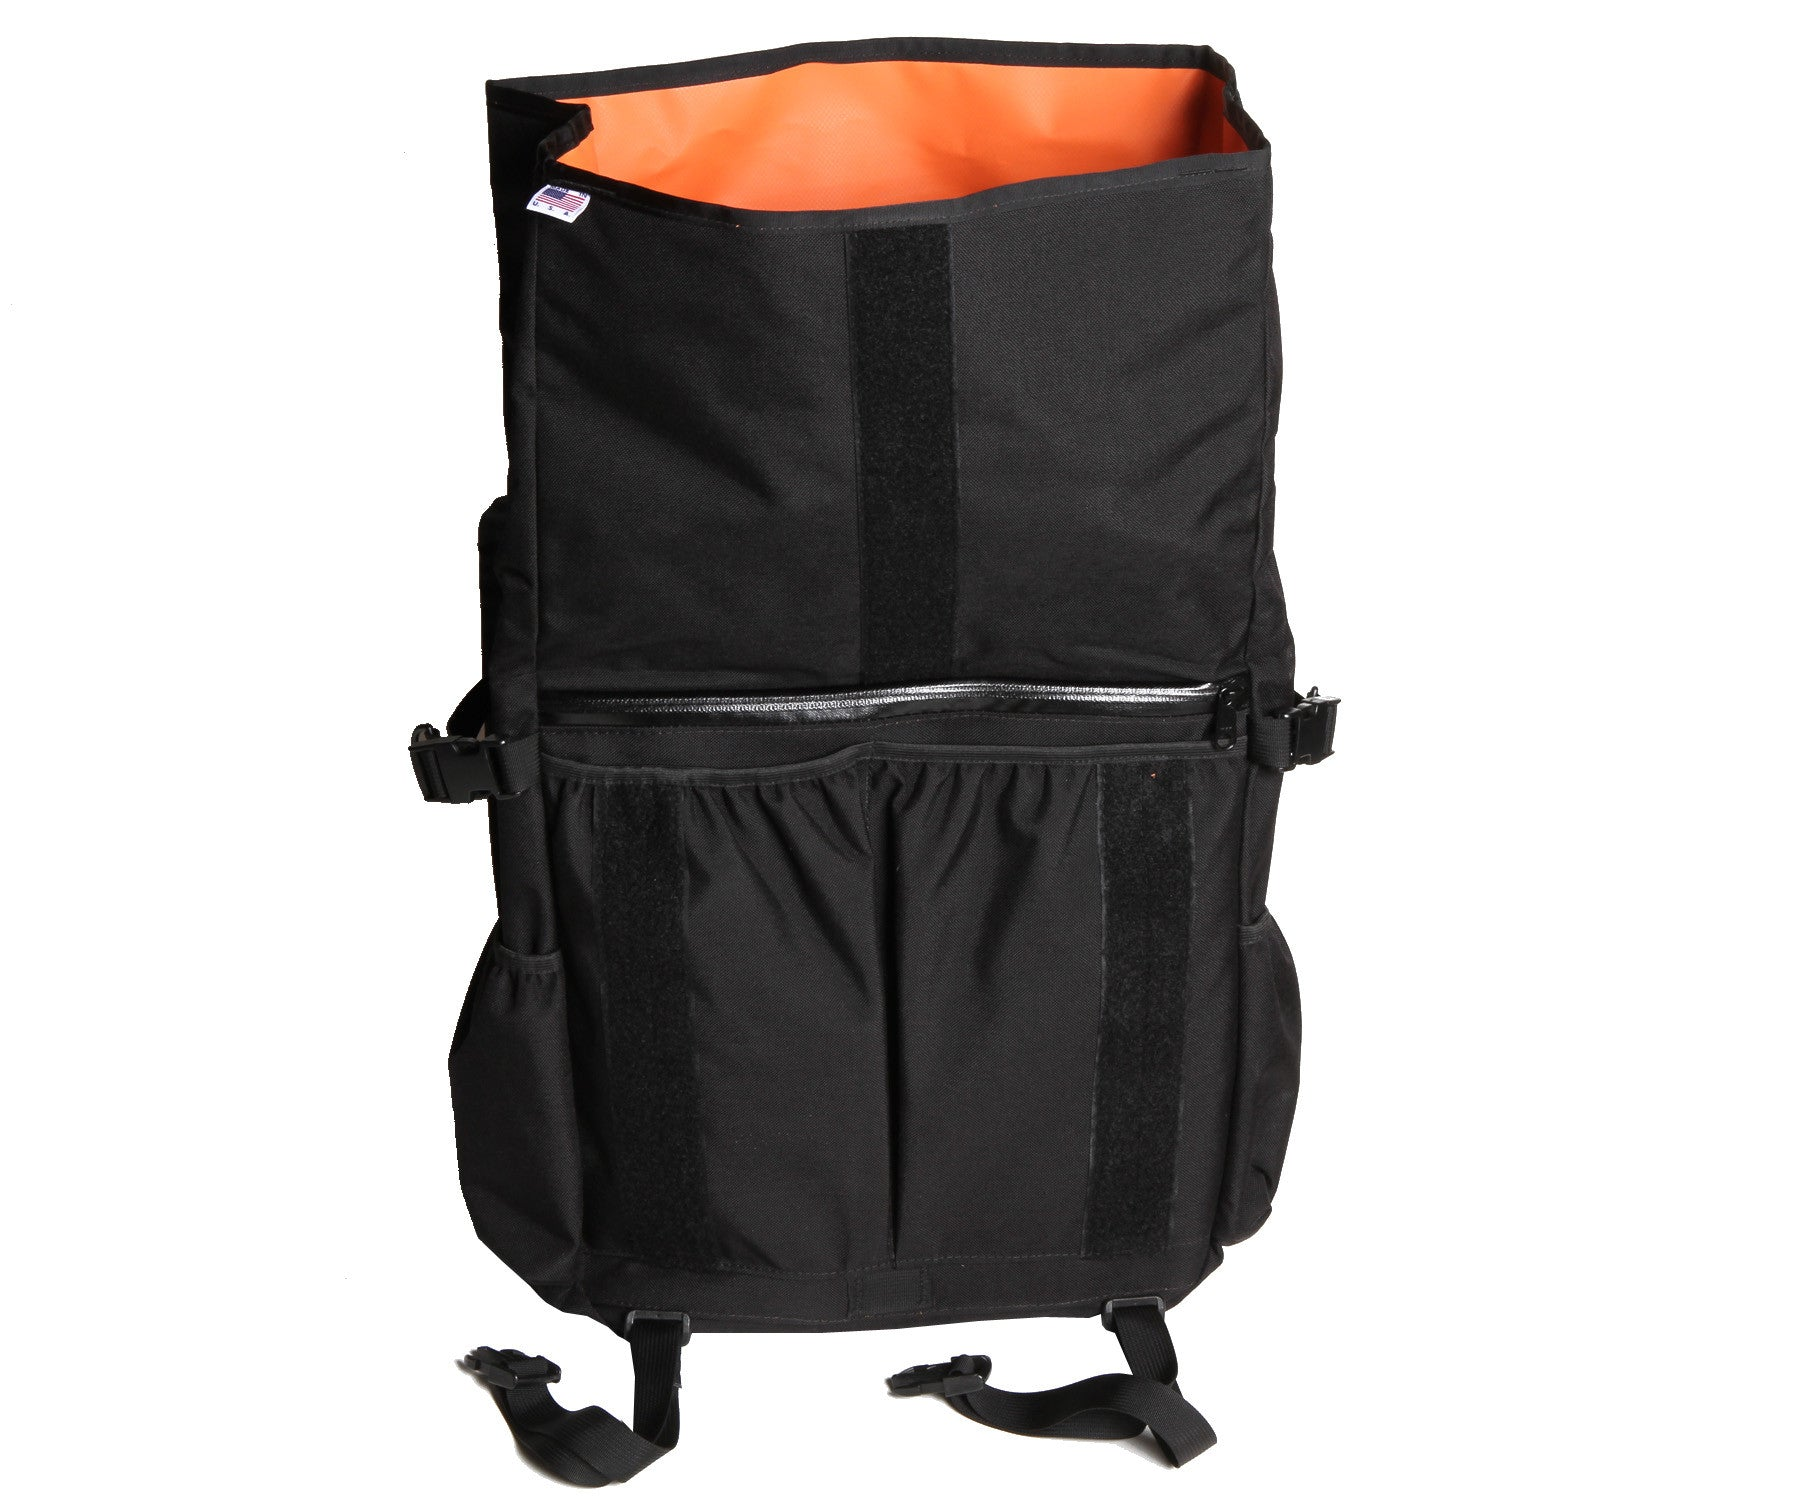 Road Runner Anything backpack - large